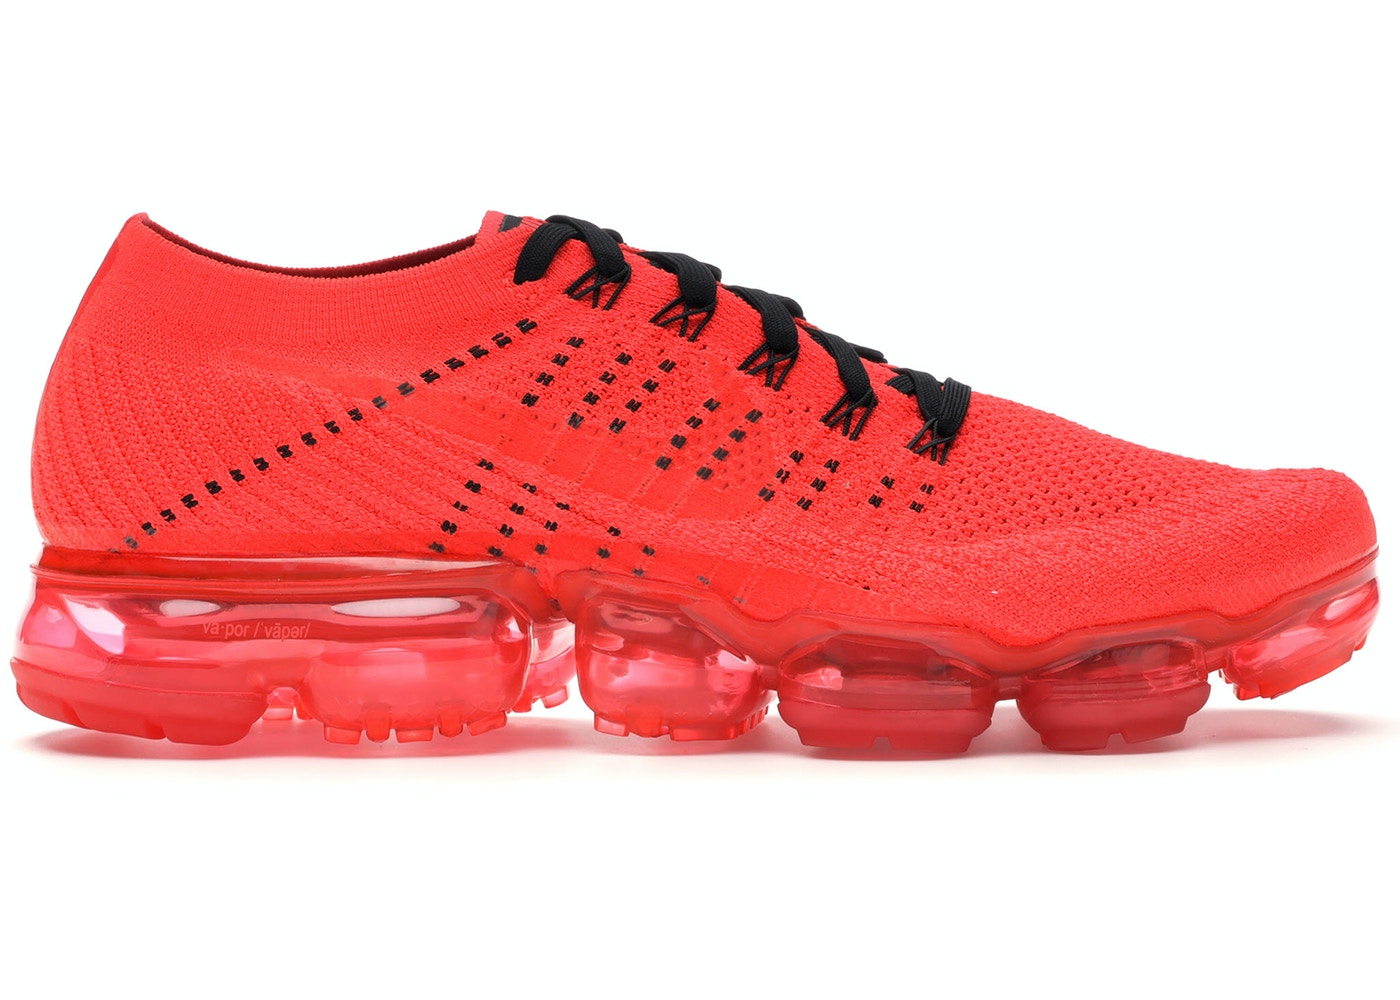 official photos ade71 a8014 Buy Nike Air Max Shoes & Deadstock Sneakers